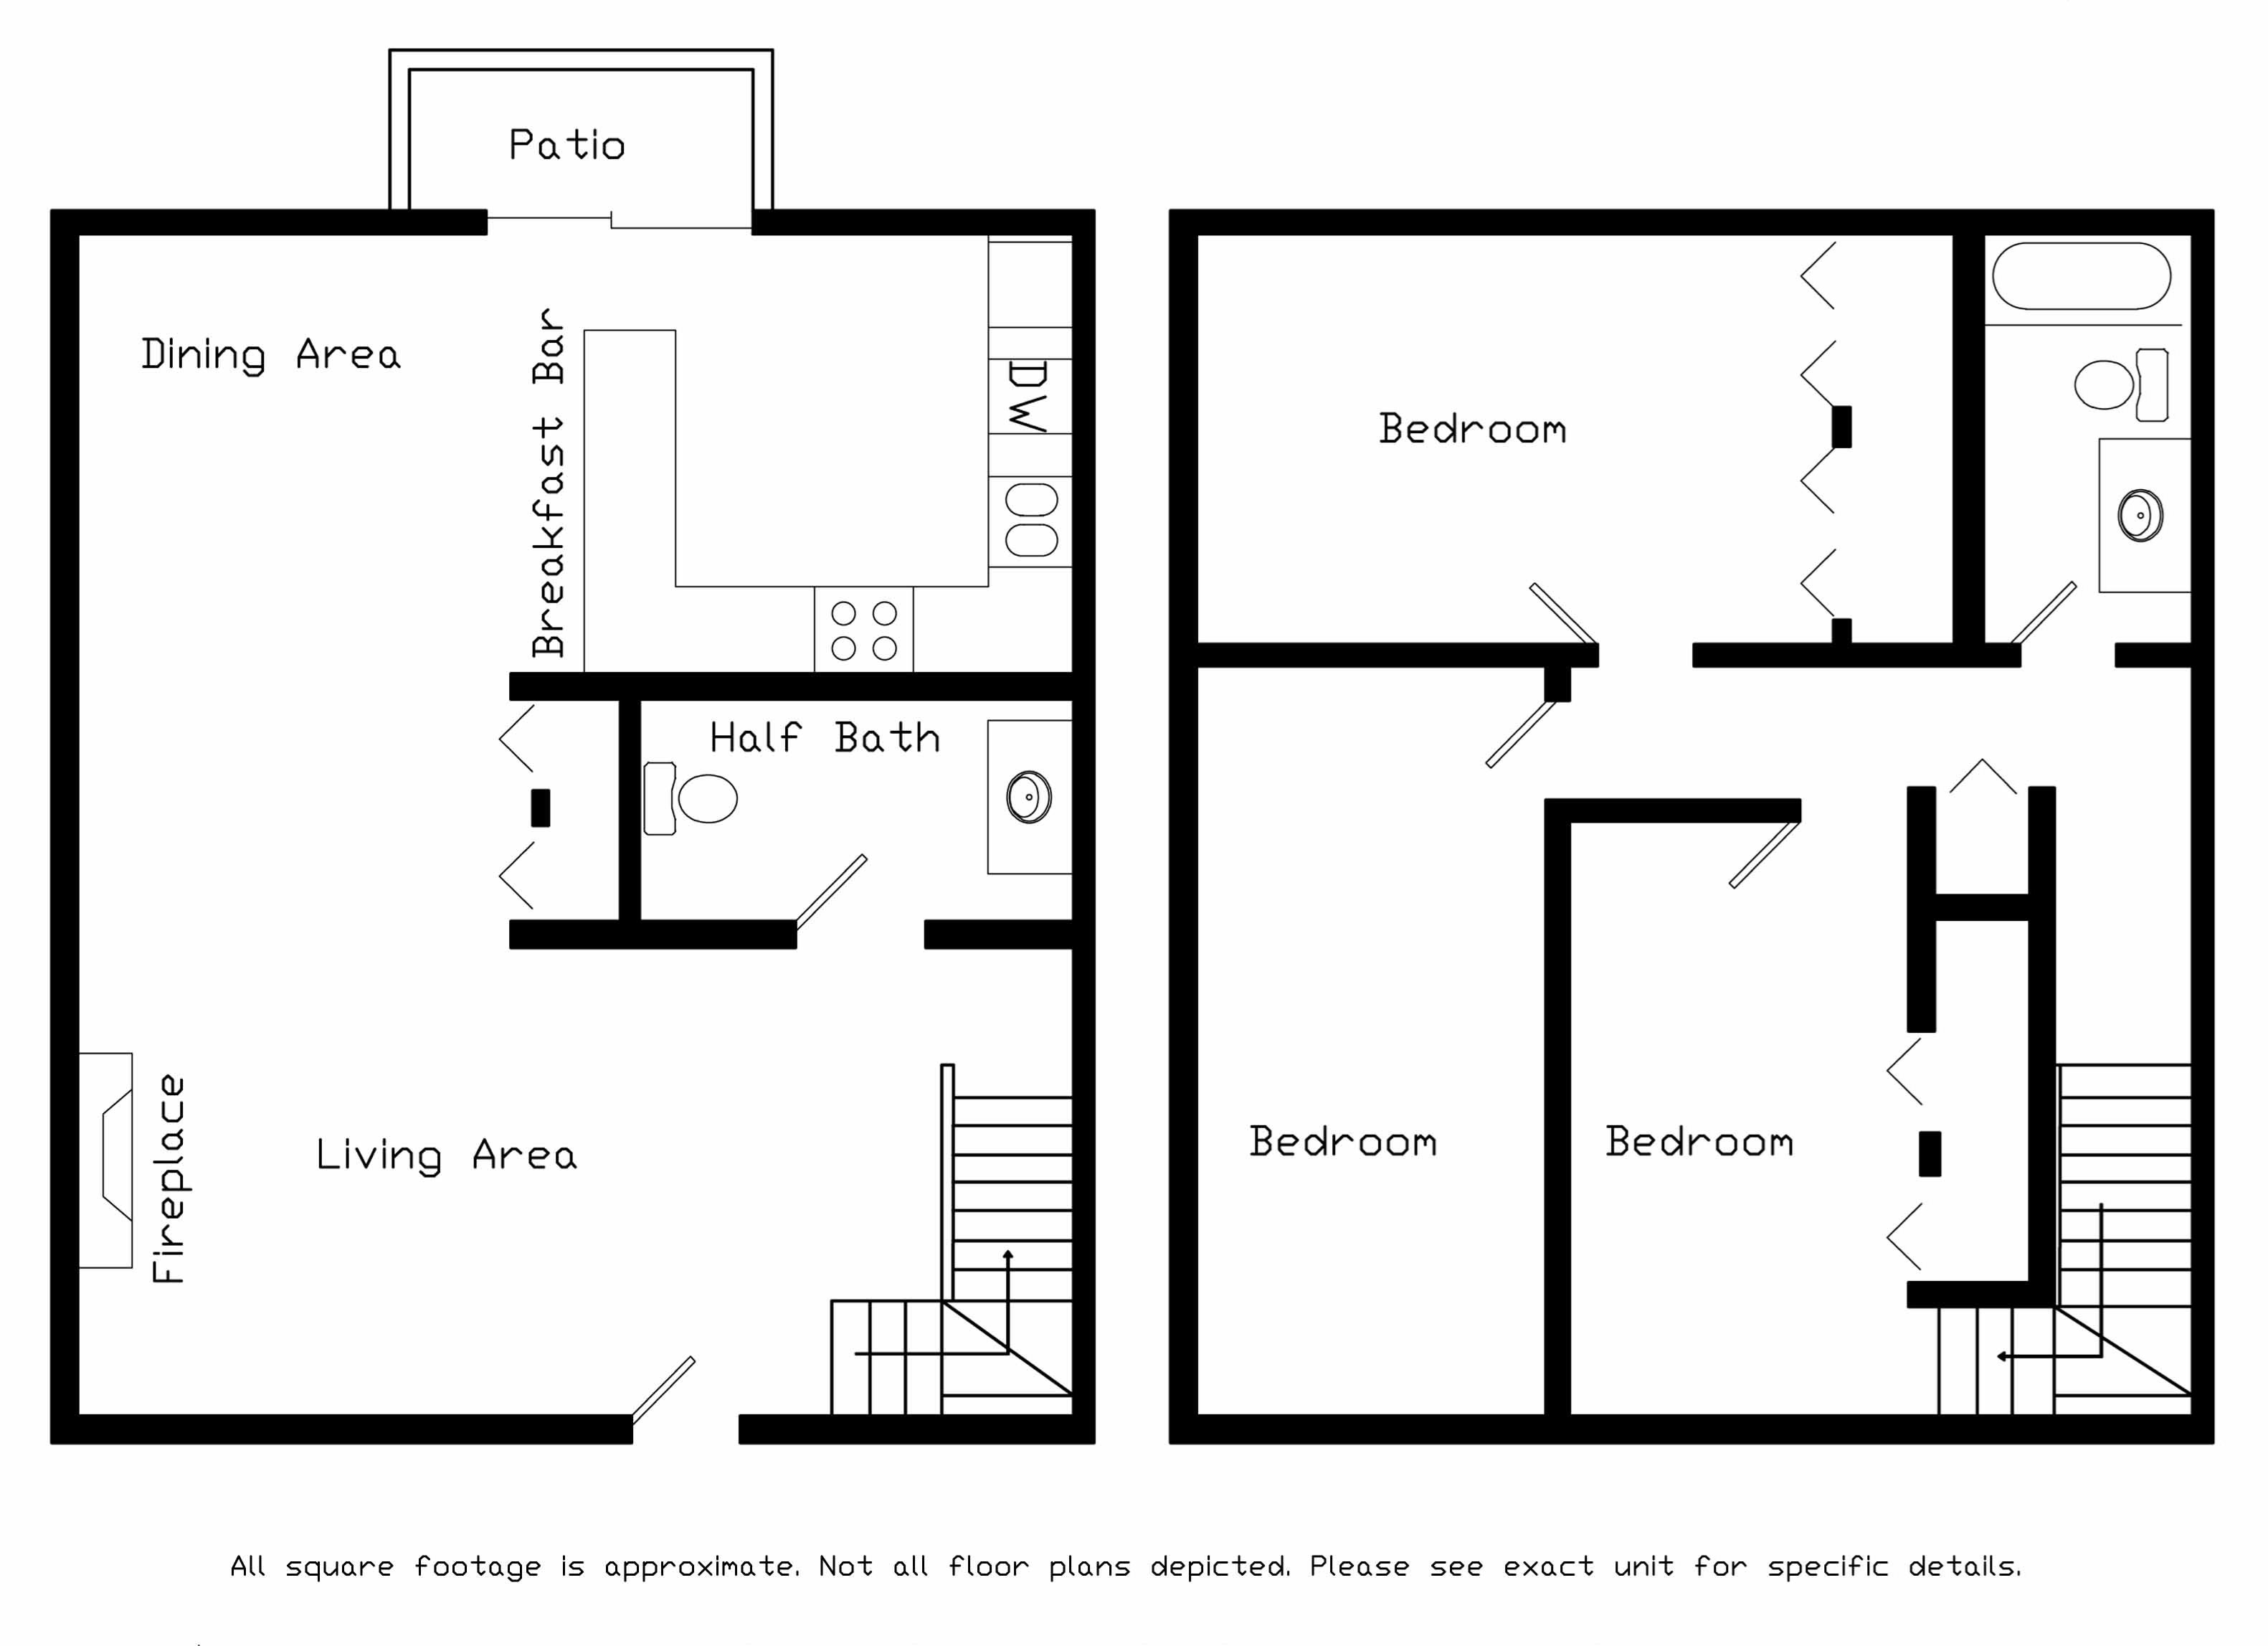 Floor Plans Of Brookstone Townhomes In Fitchburg Wi Actually Prefer To Get Several Copies My Plan And Draw Each 3s 6